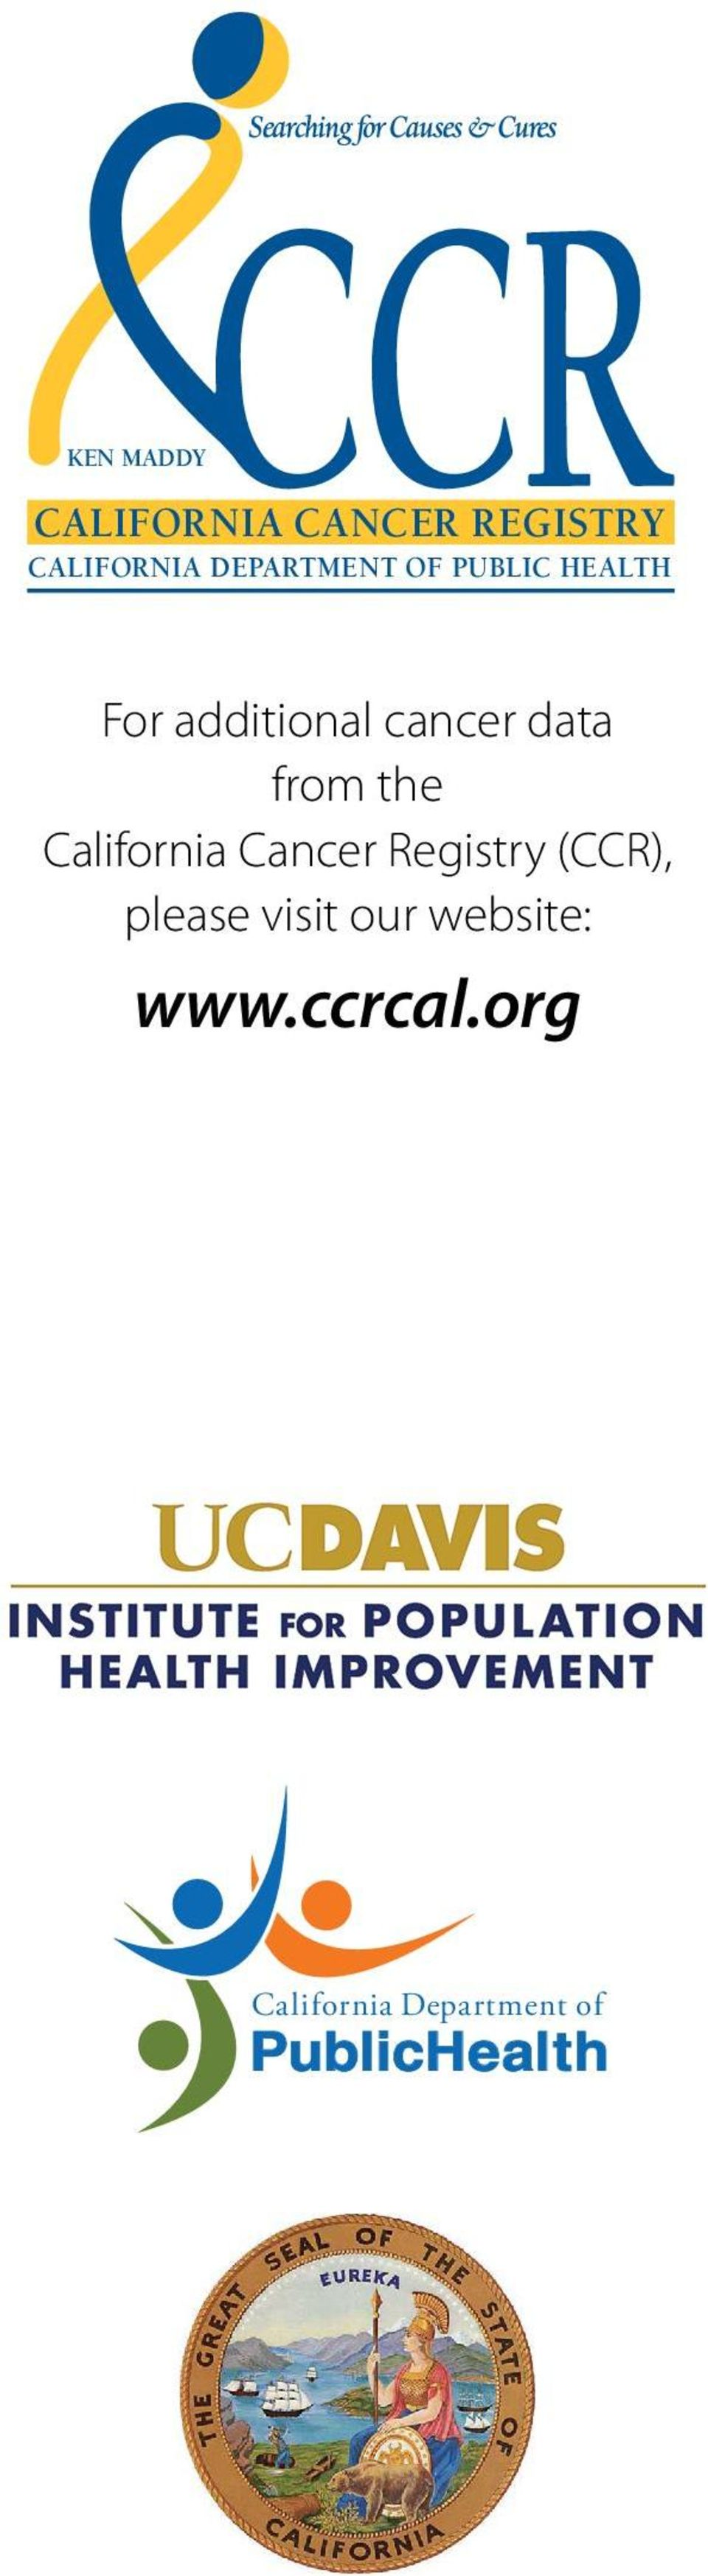 cancer data from the California Cancer Registry (CCR), please